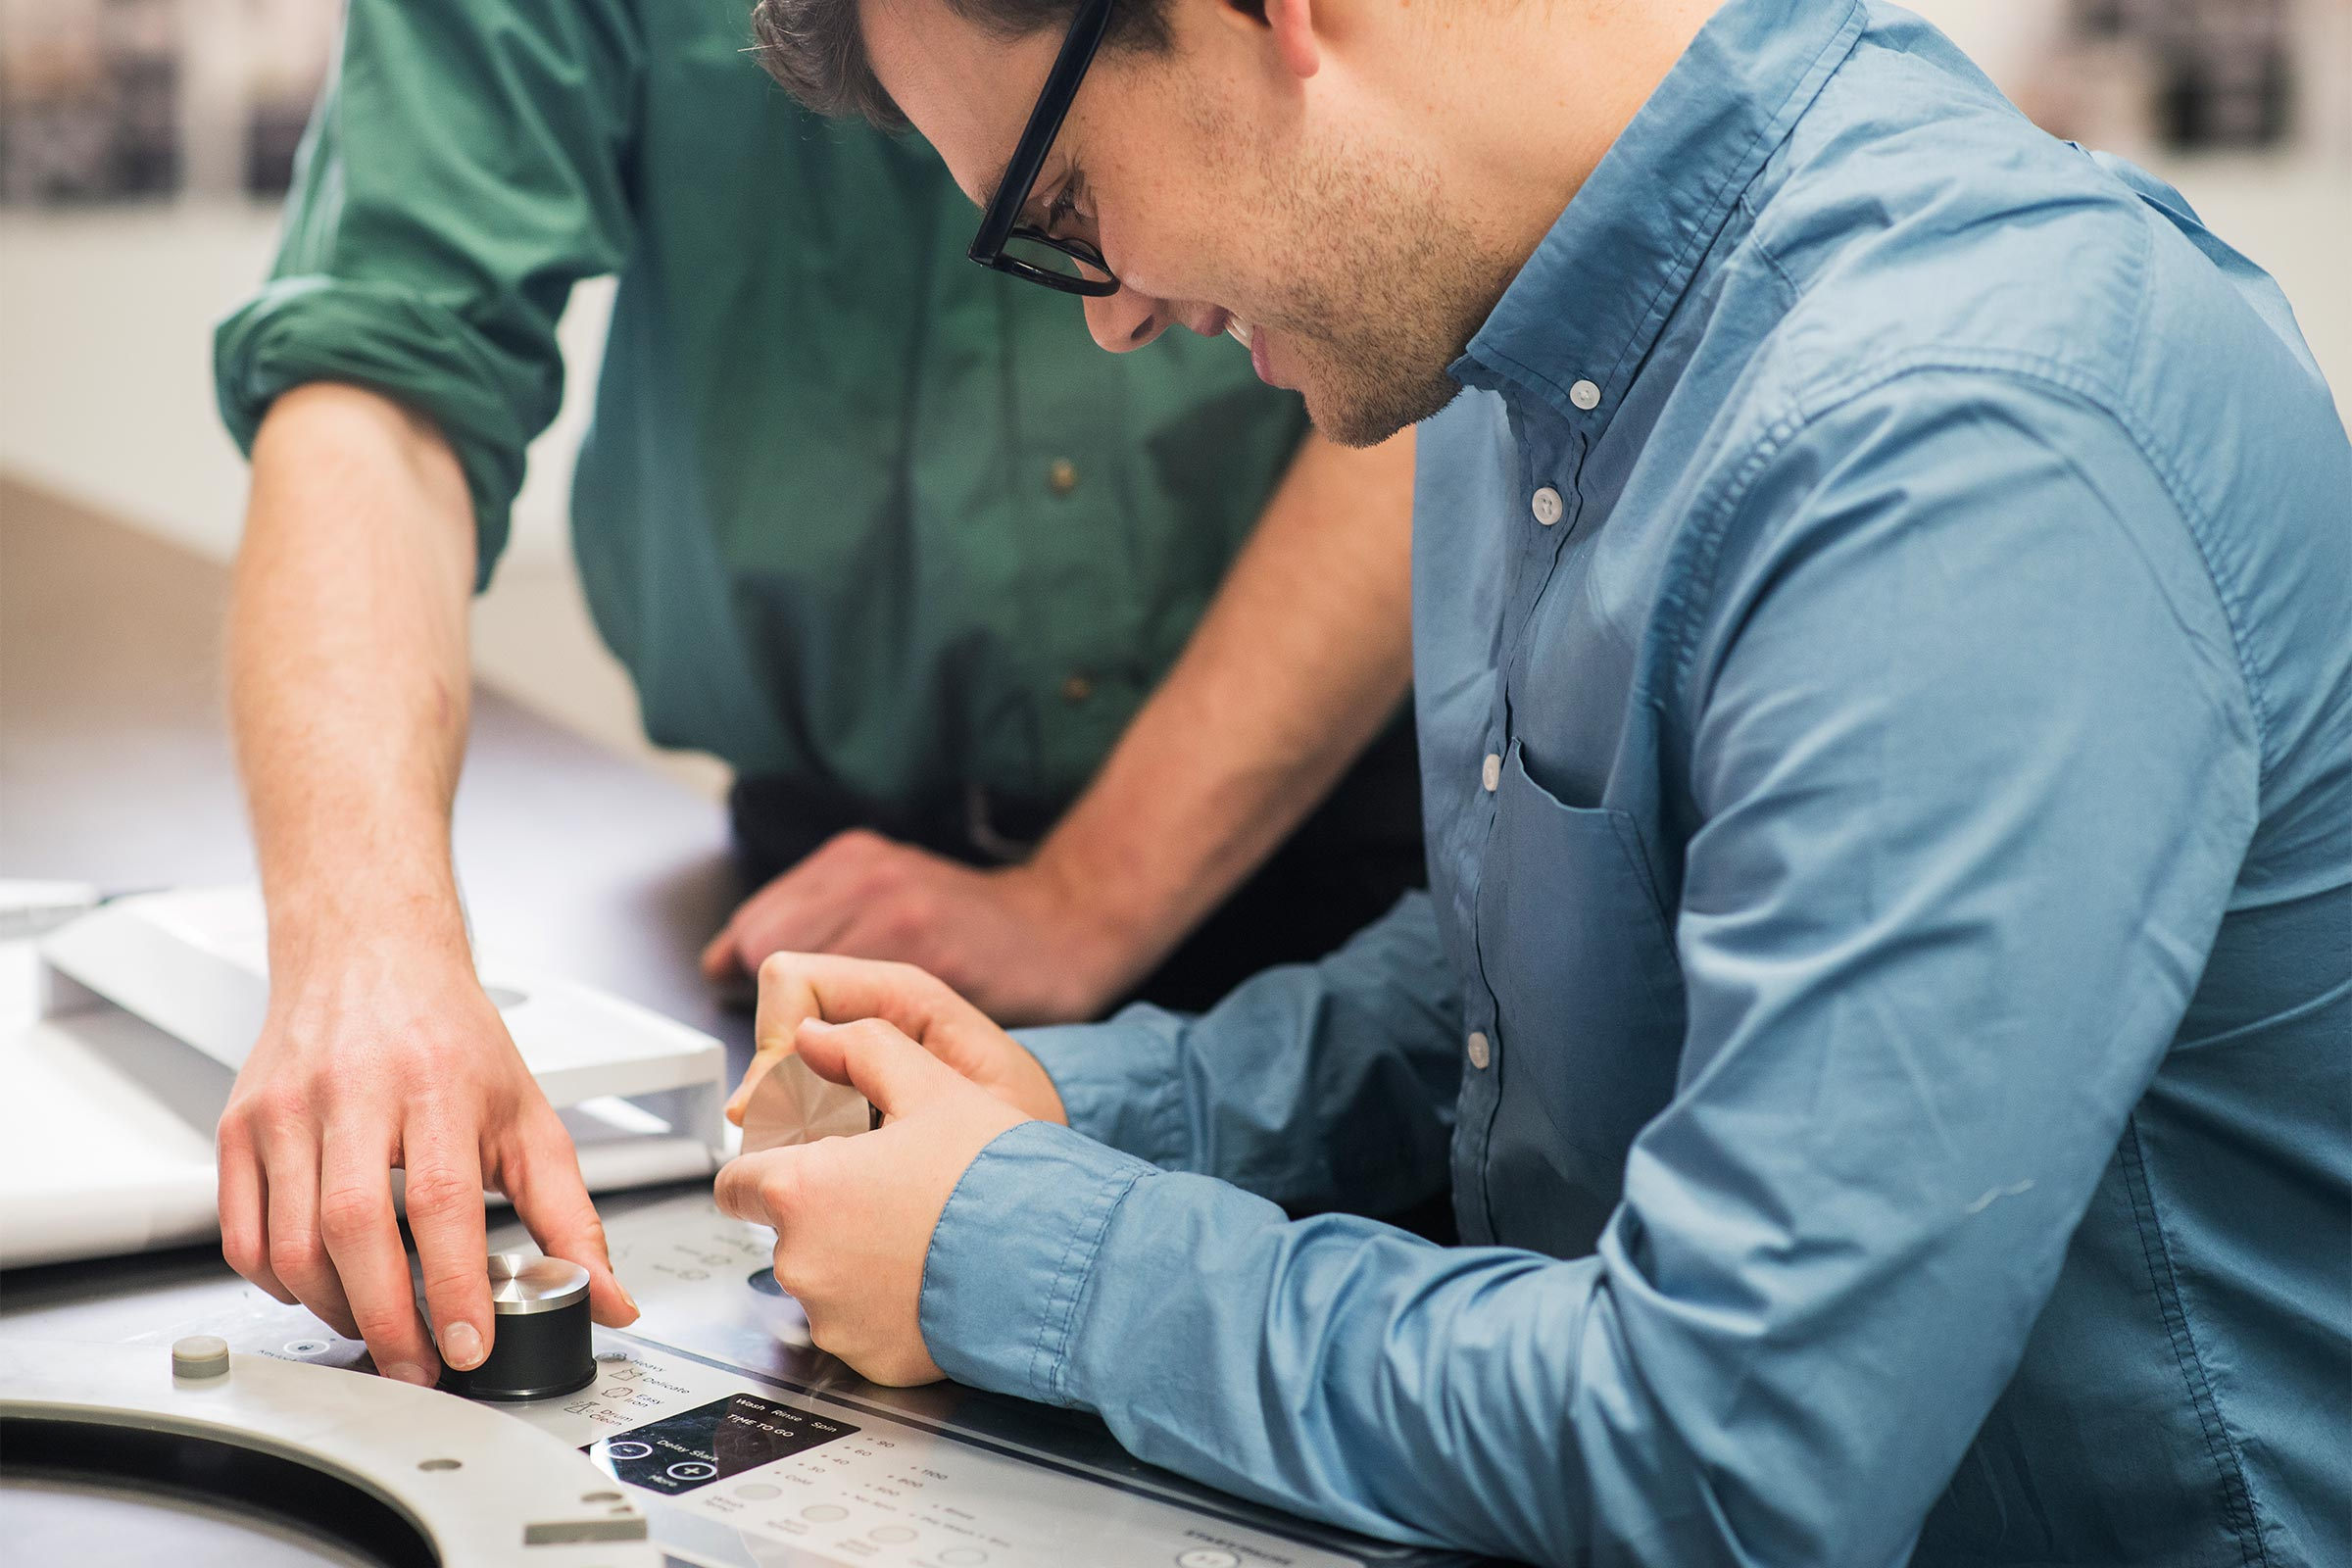 Two men working on a healthtech prototype